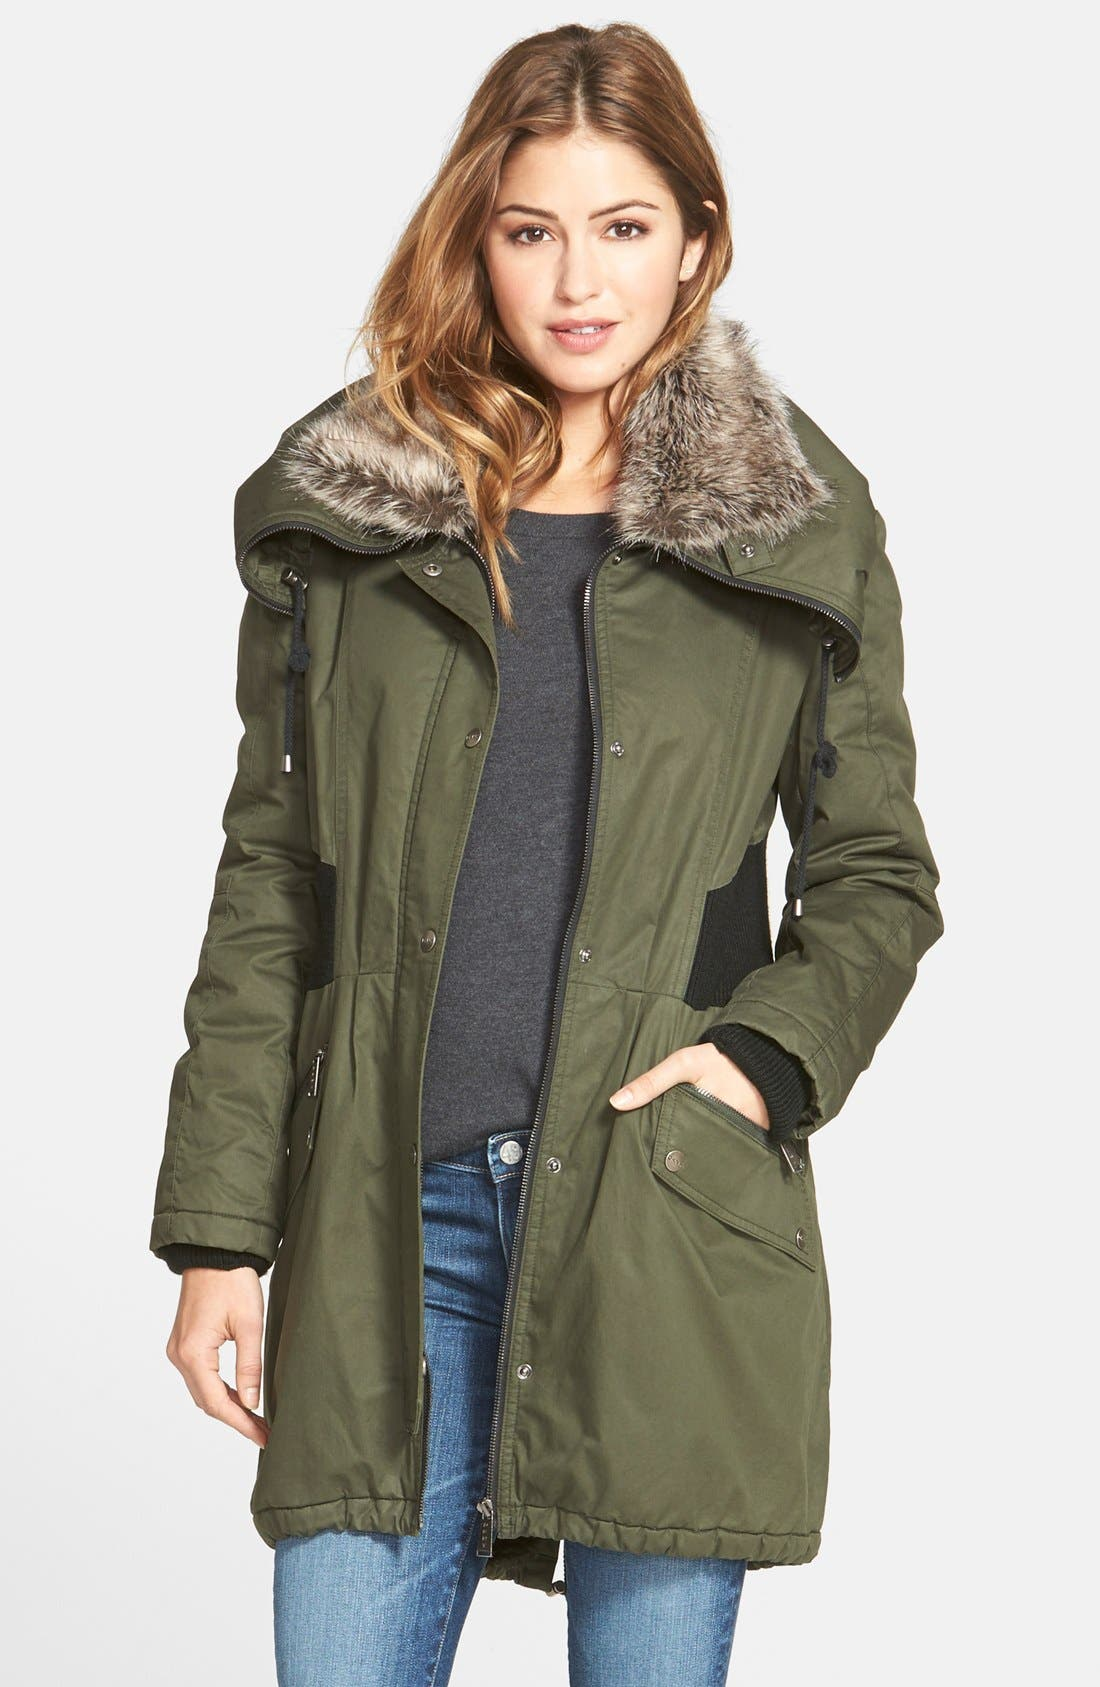 Alternate Image 1 Selected - DKNY Faux Fur Trim Utility Parka